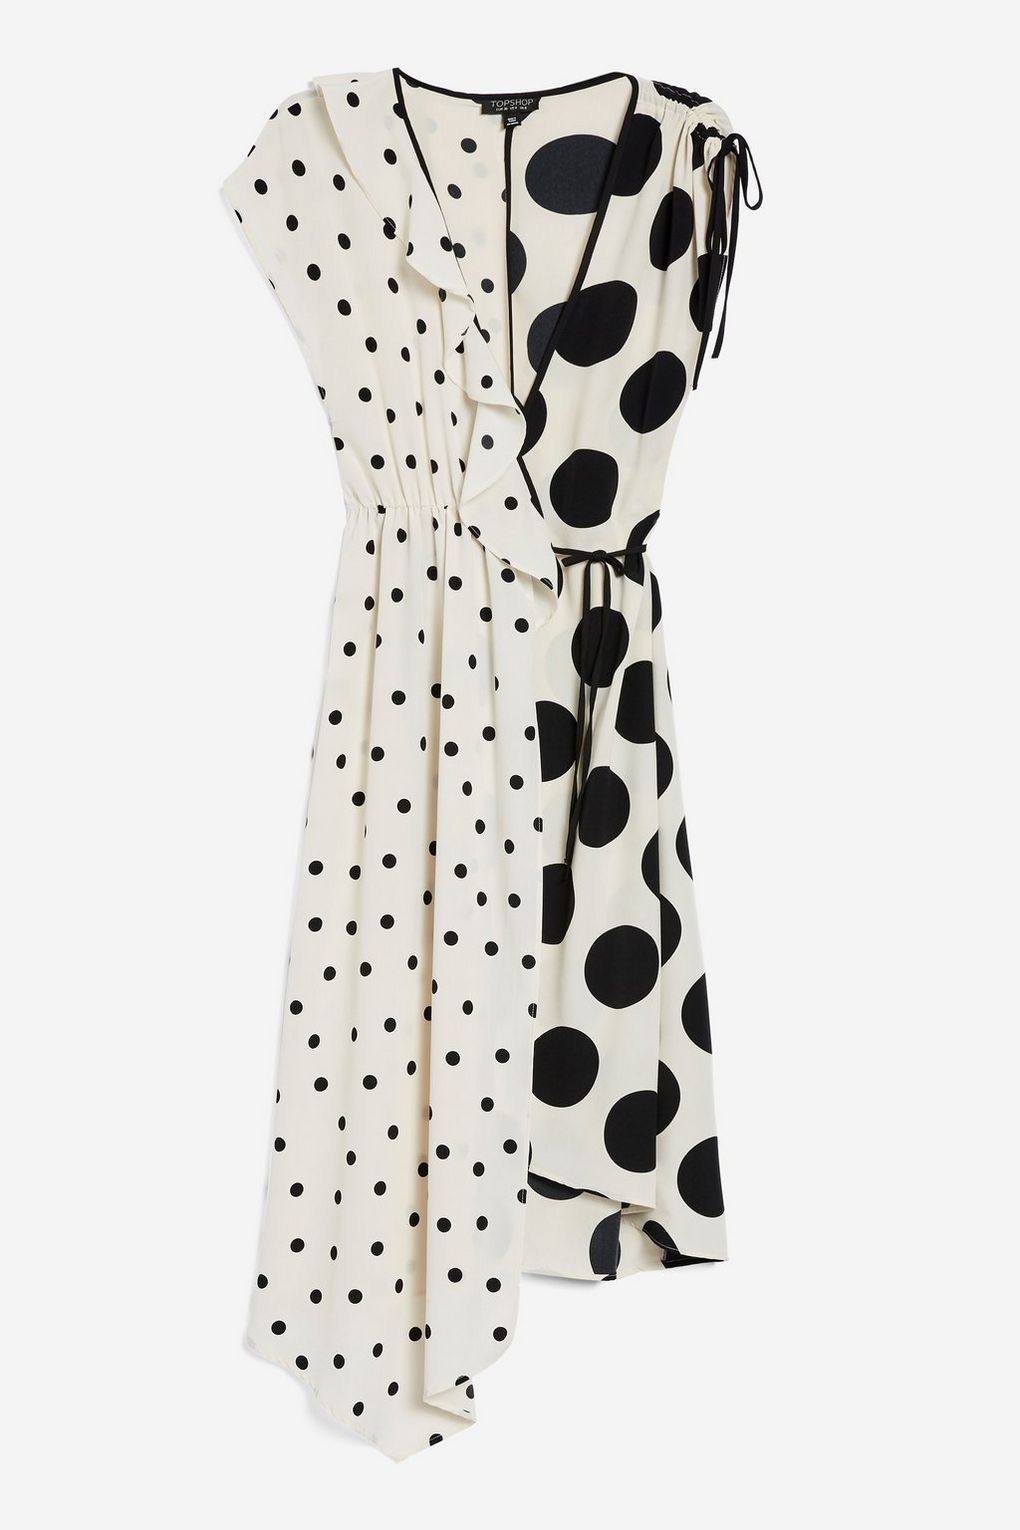 Mix Spot Ruched Midi Wrap Dress - Priced at £46, available at Topshop